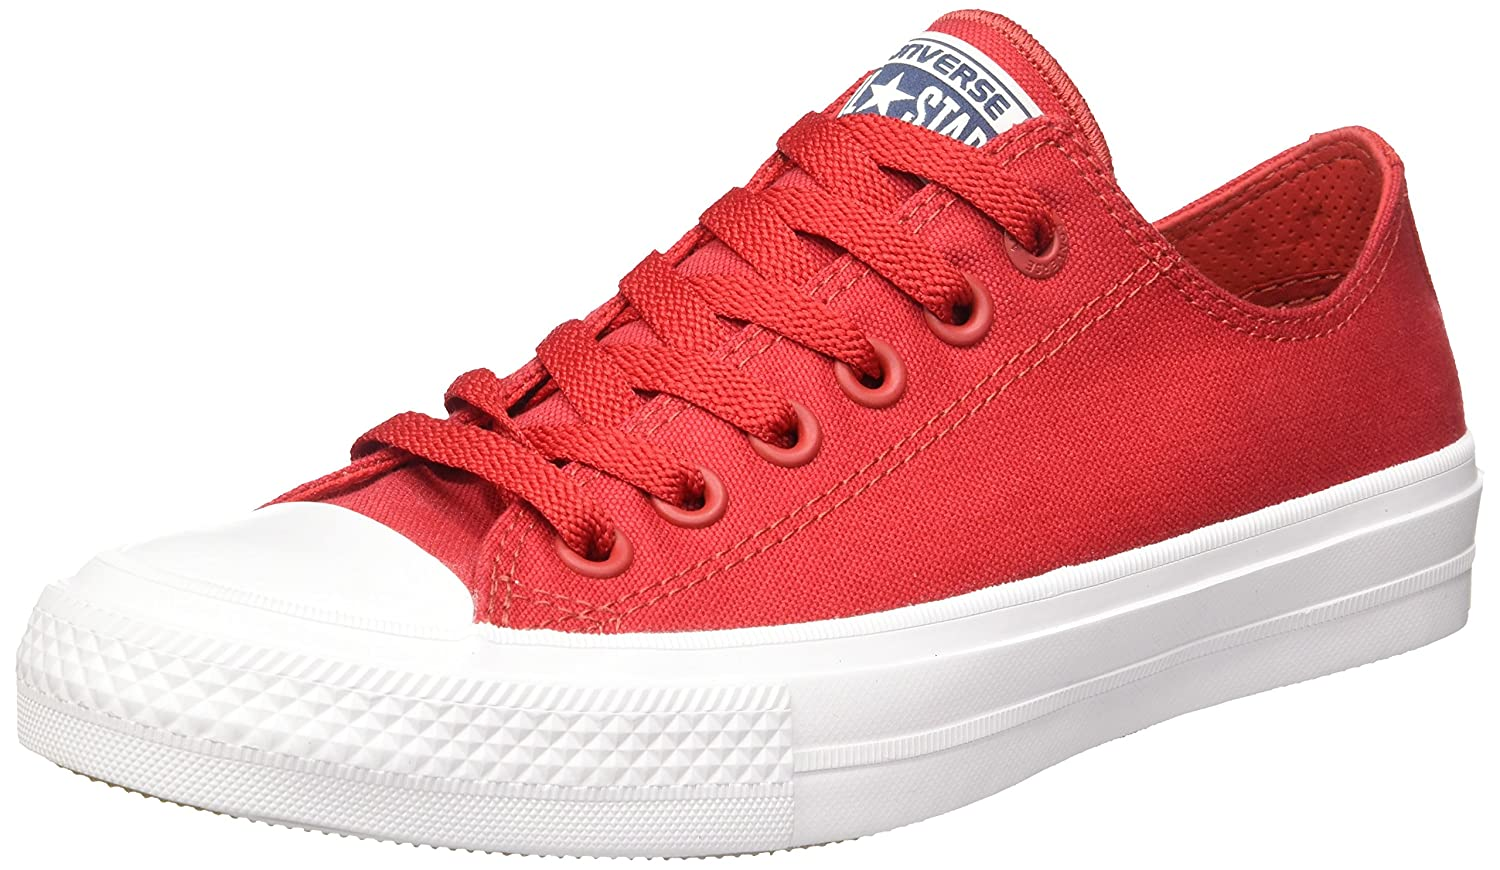 Salsa Red White Navy Converse Chuck Taylor Ii Ox Ankle-High Canvas Fashion Sneaker